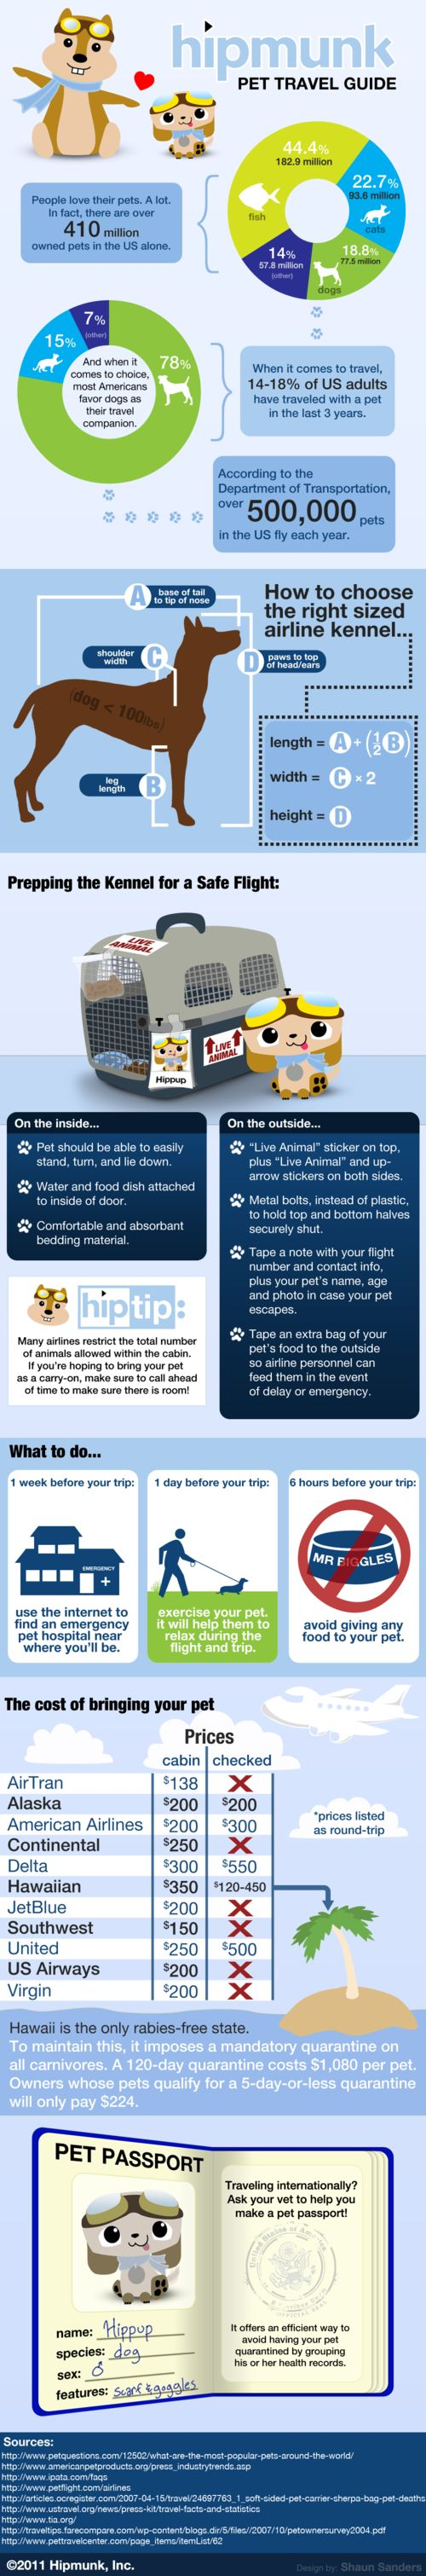 SWEET infographic for traveling with pets